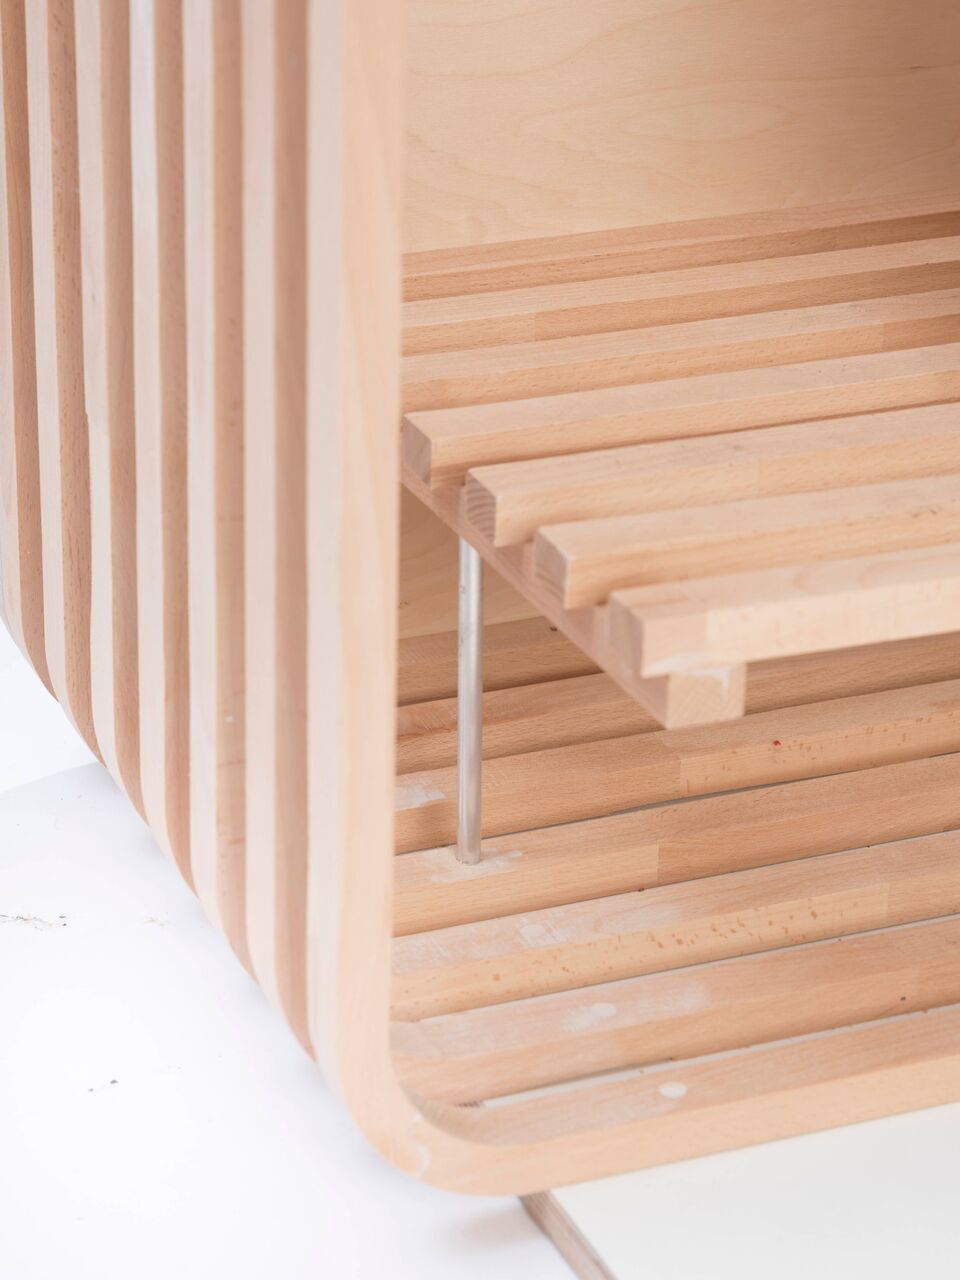 JH - collective, C.Howes Design and Bertie Buck - Diamond in the Woof - Image 5 of 6